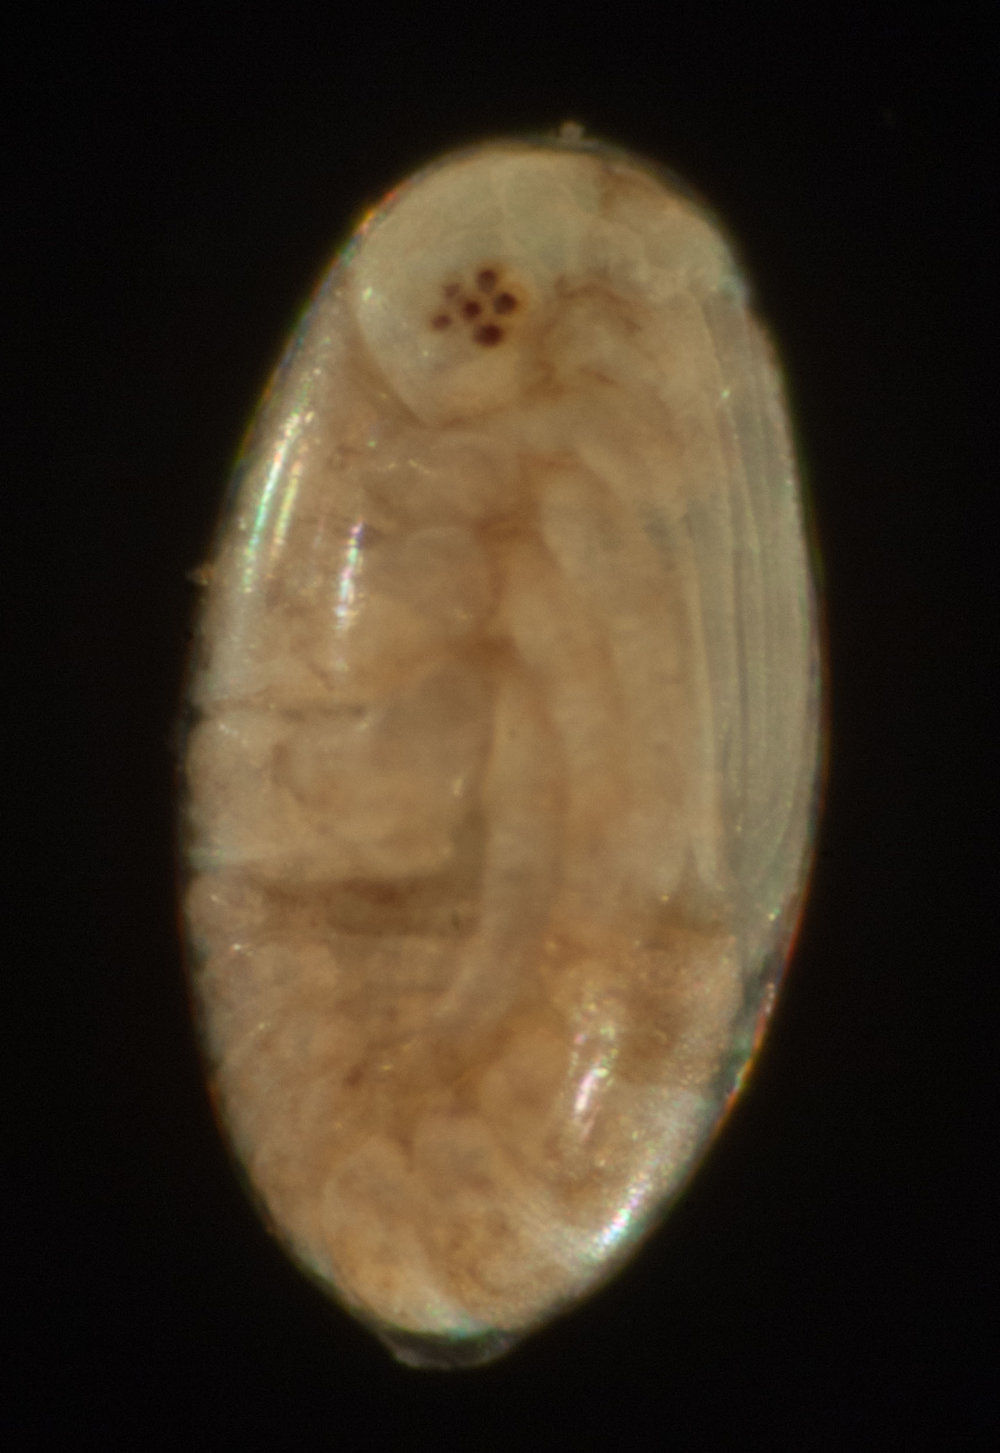 A side view of the same embryo reveals one of its pair of eyes. Each consists of just six visual units, called ommatidia. Adult insects typically have eyes with thousands of ommatidia. The rear end of the embryo now curls forwards and lies just beneath the limbs. Tightly packed in there!